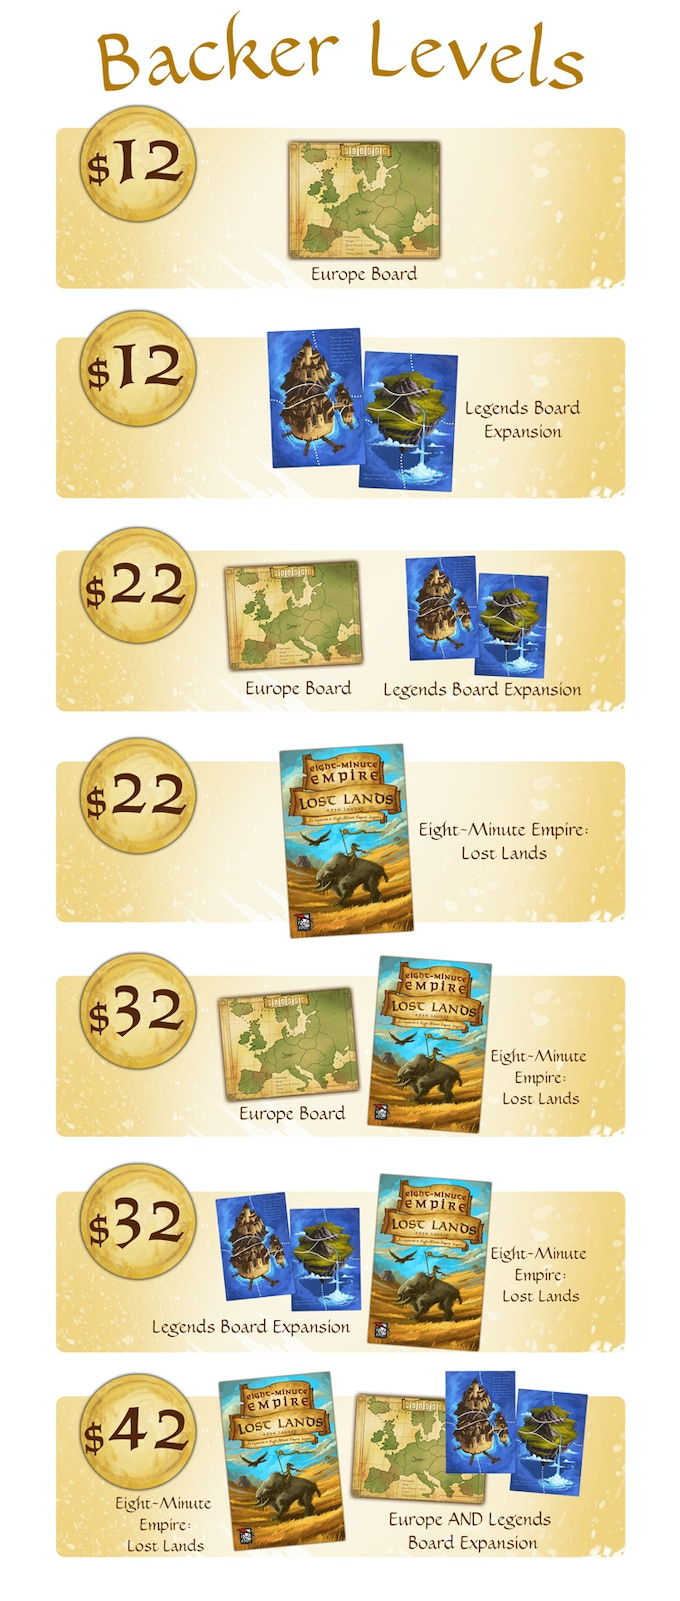 Note: None of these levels includes the original Eight-Minute Empire: Legends, which you will need in order to play Lost Lands.